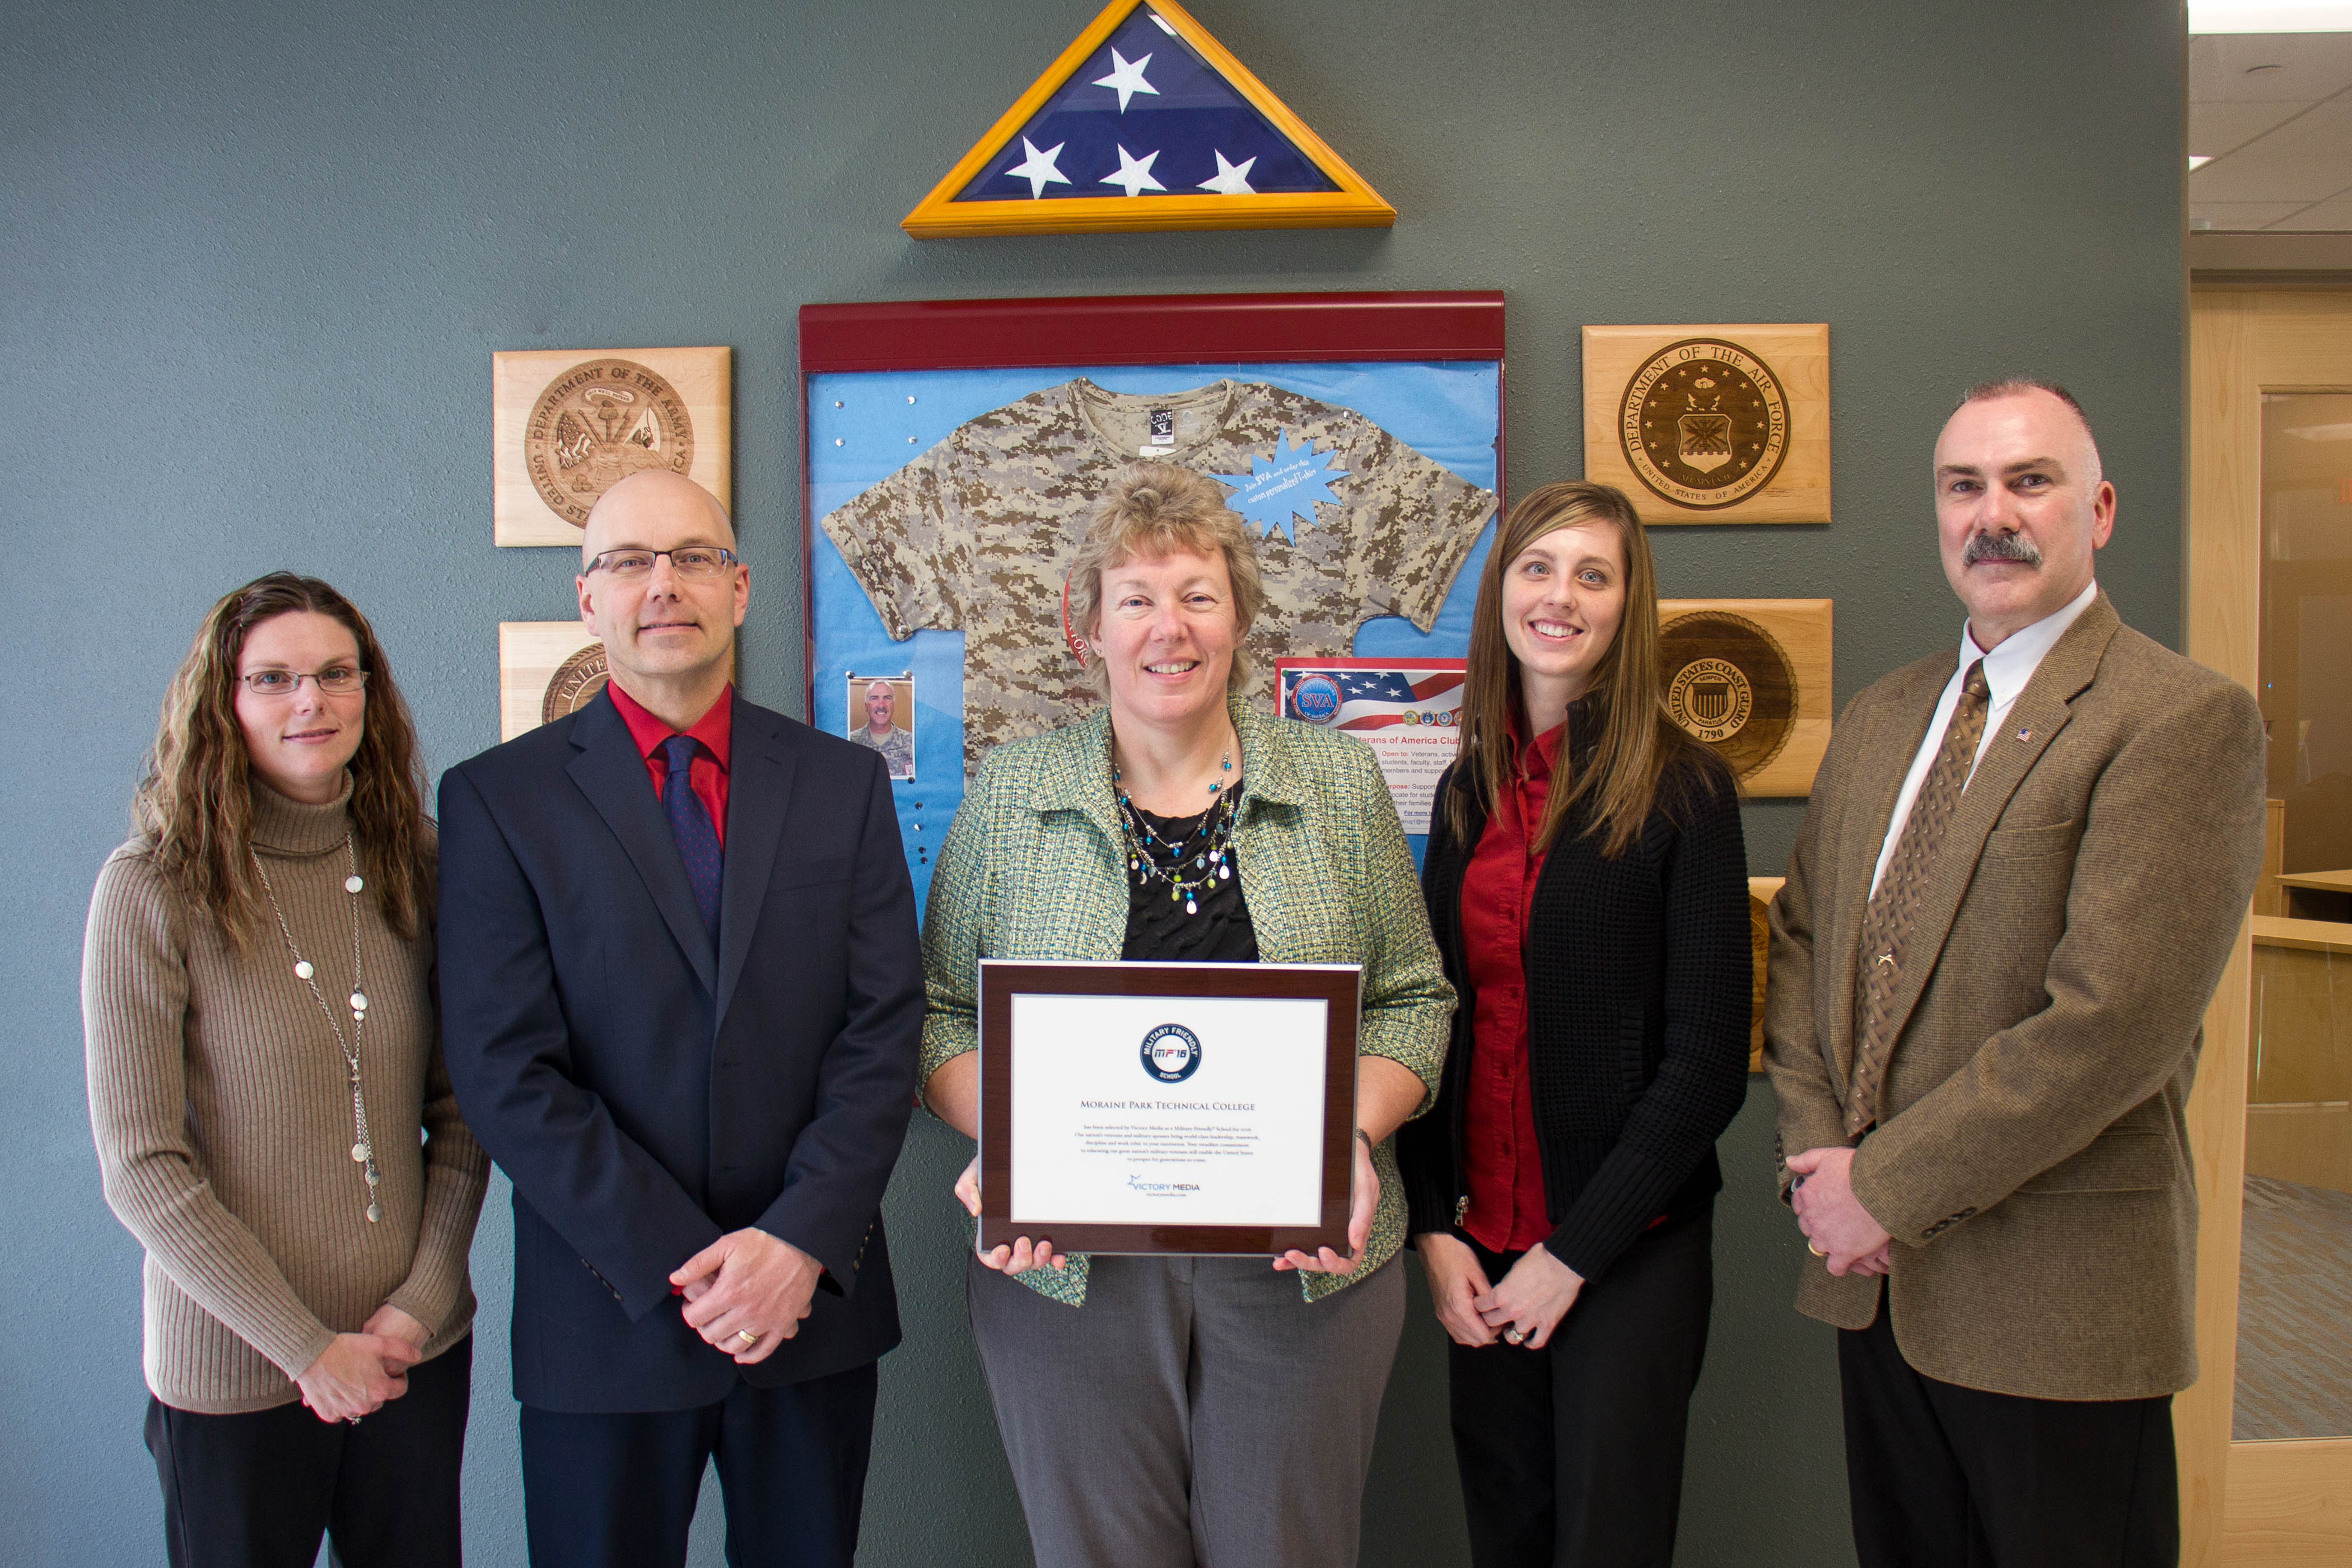 Moraine Park president Bonnie Baerwald holding Military Friendly award with Kim DeMaa, Steve Pepper, Stephanie Lueck, and Scott Pieper